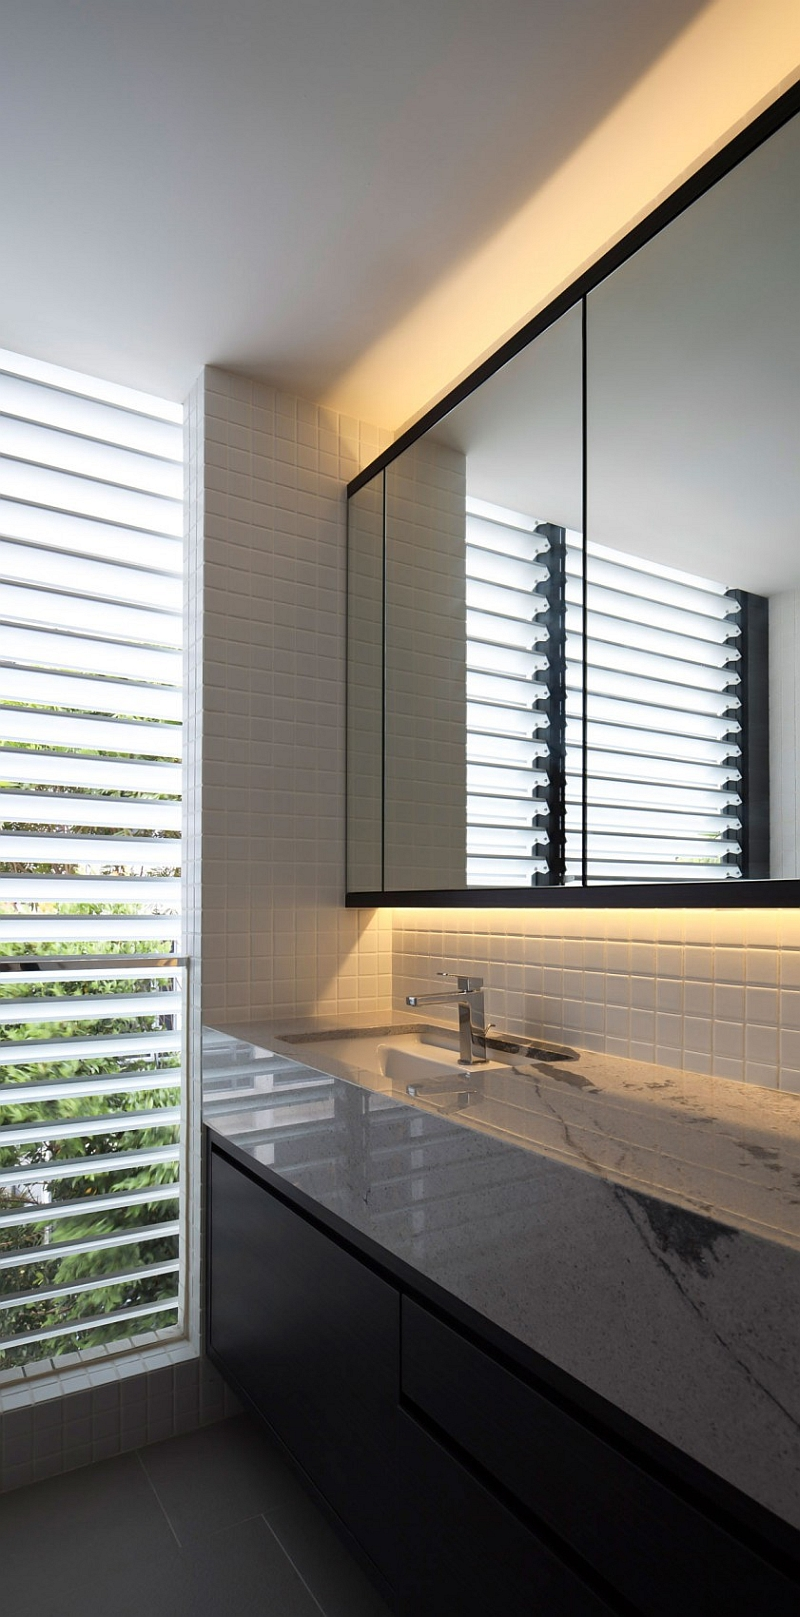 Custom made louvers in the bathroom